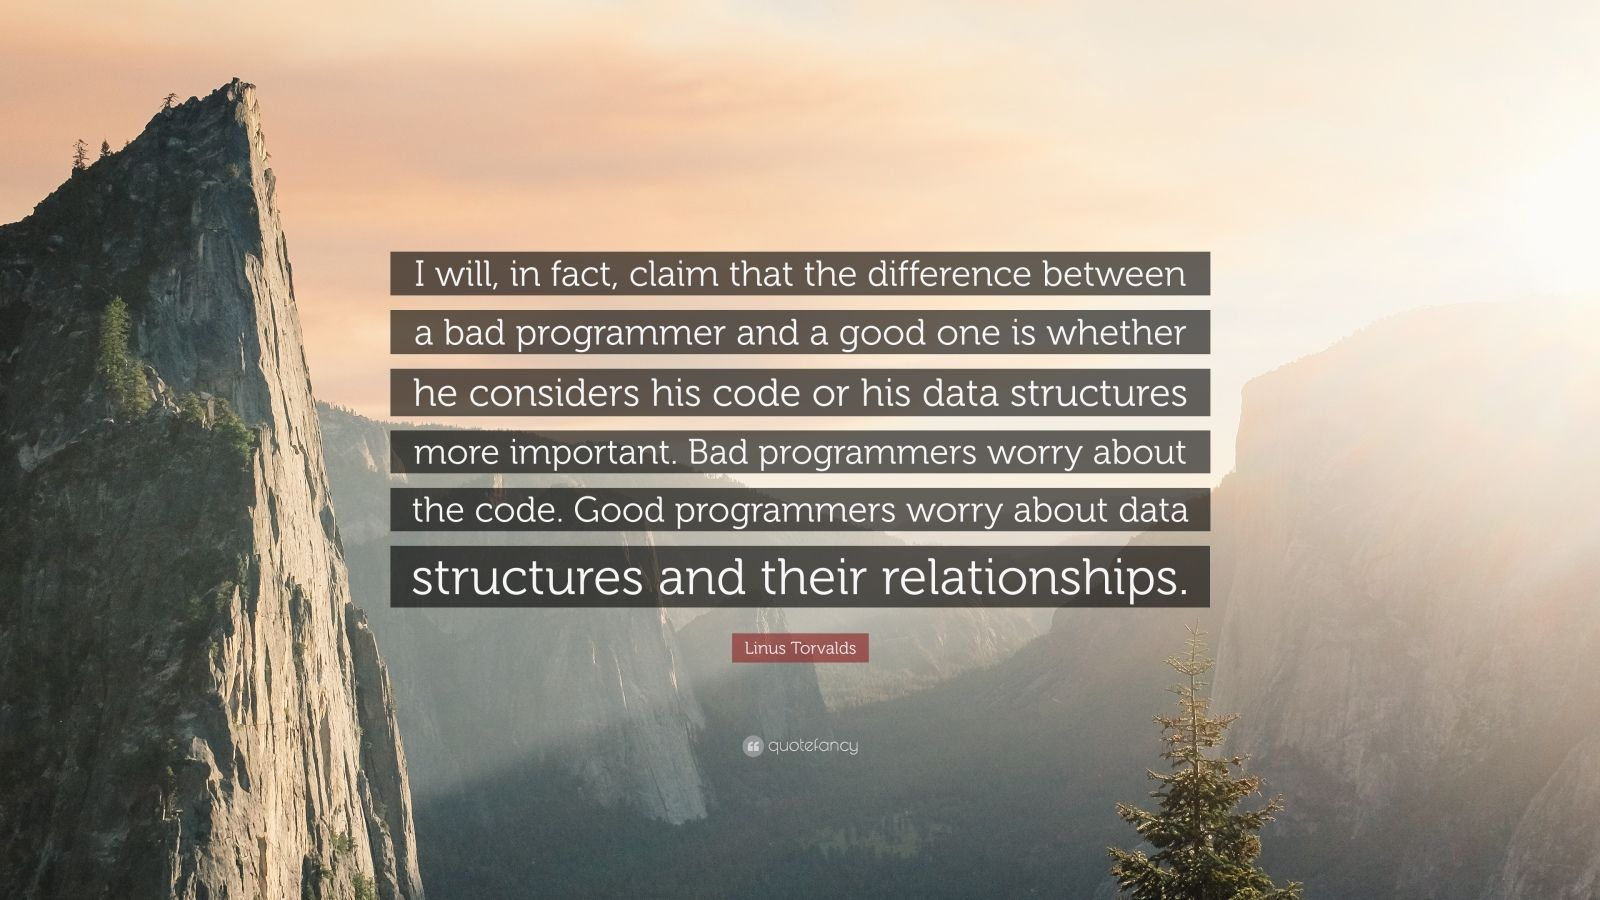 """Linus Torvalds Quote: """"I will, in fact, claim that the difference between a bad programmer and a good one is whether he considers his code or his data structures more important. Bad programmers worry about the code. Good programmers worry about data structures and their relationships."""""""